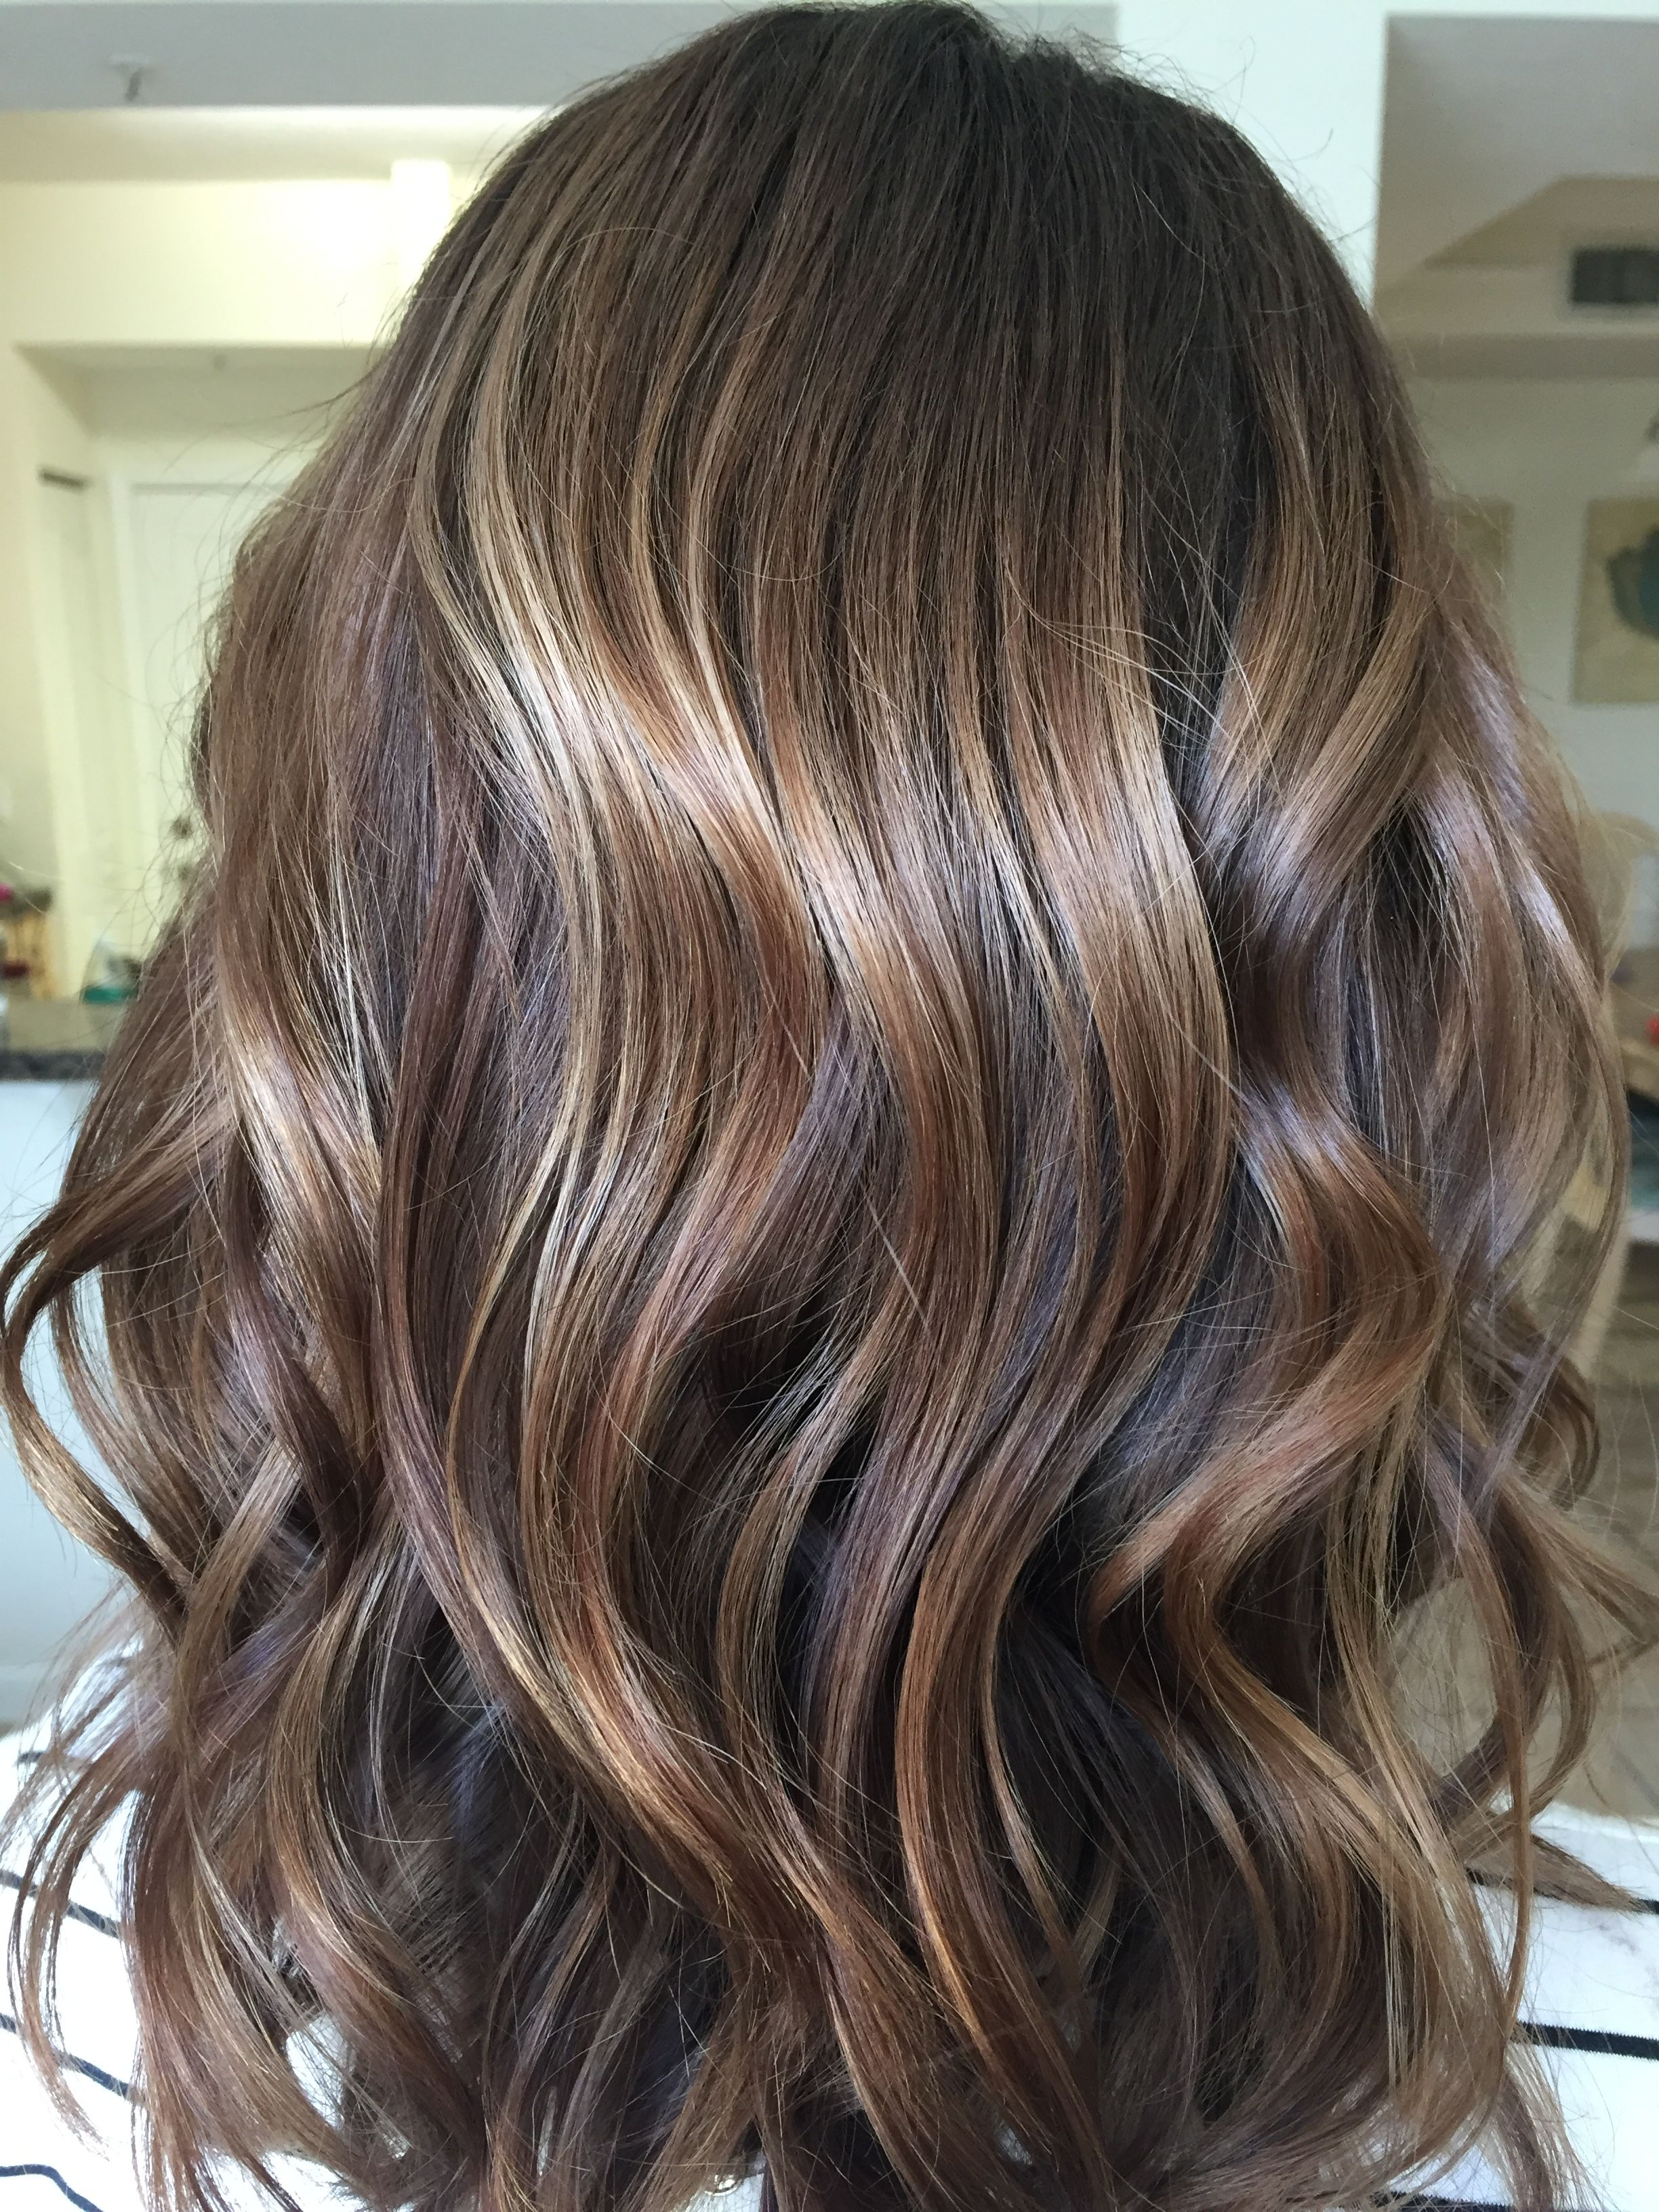 Balayage Colormelt Redkenshadeseq Balayaged With Redken